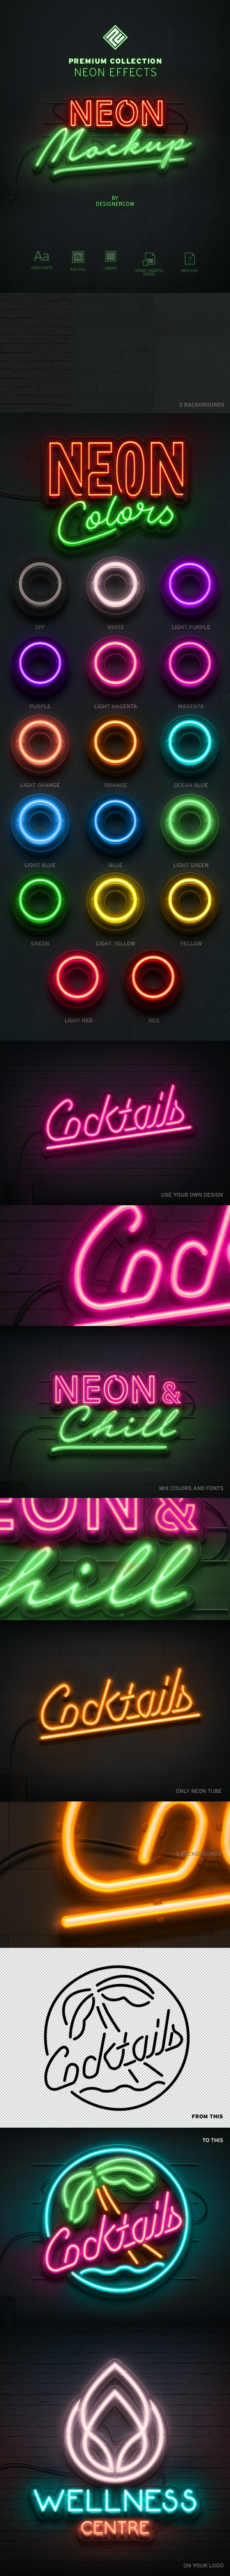 Neon Sign Effect - Premium Collection - Actions Photoshop